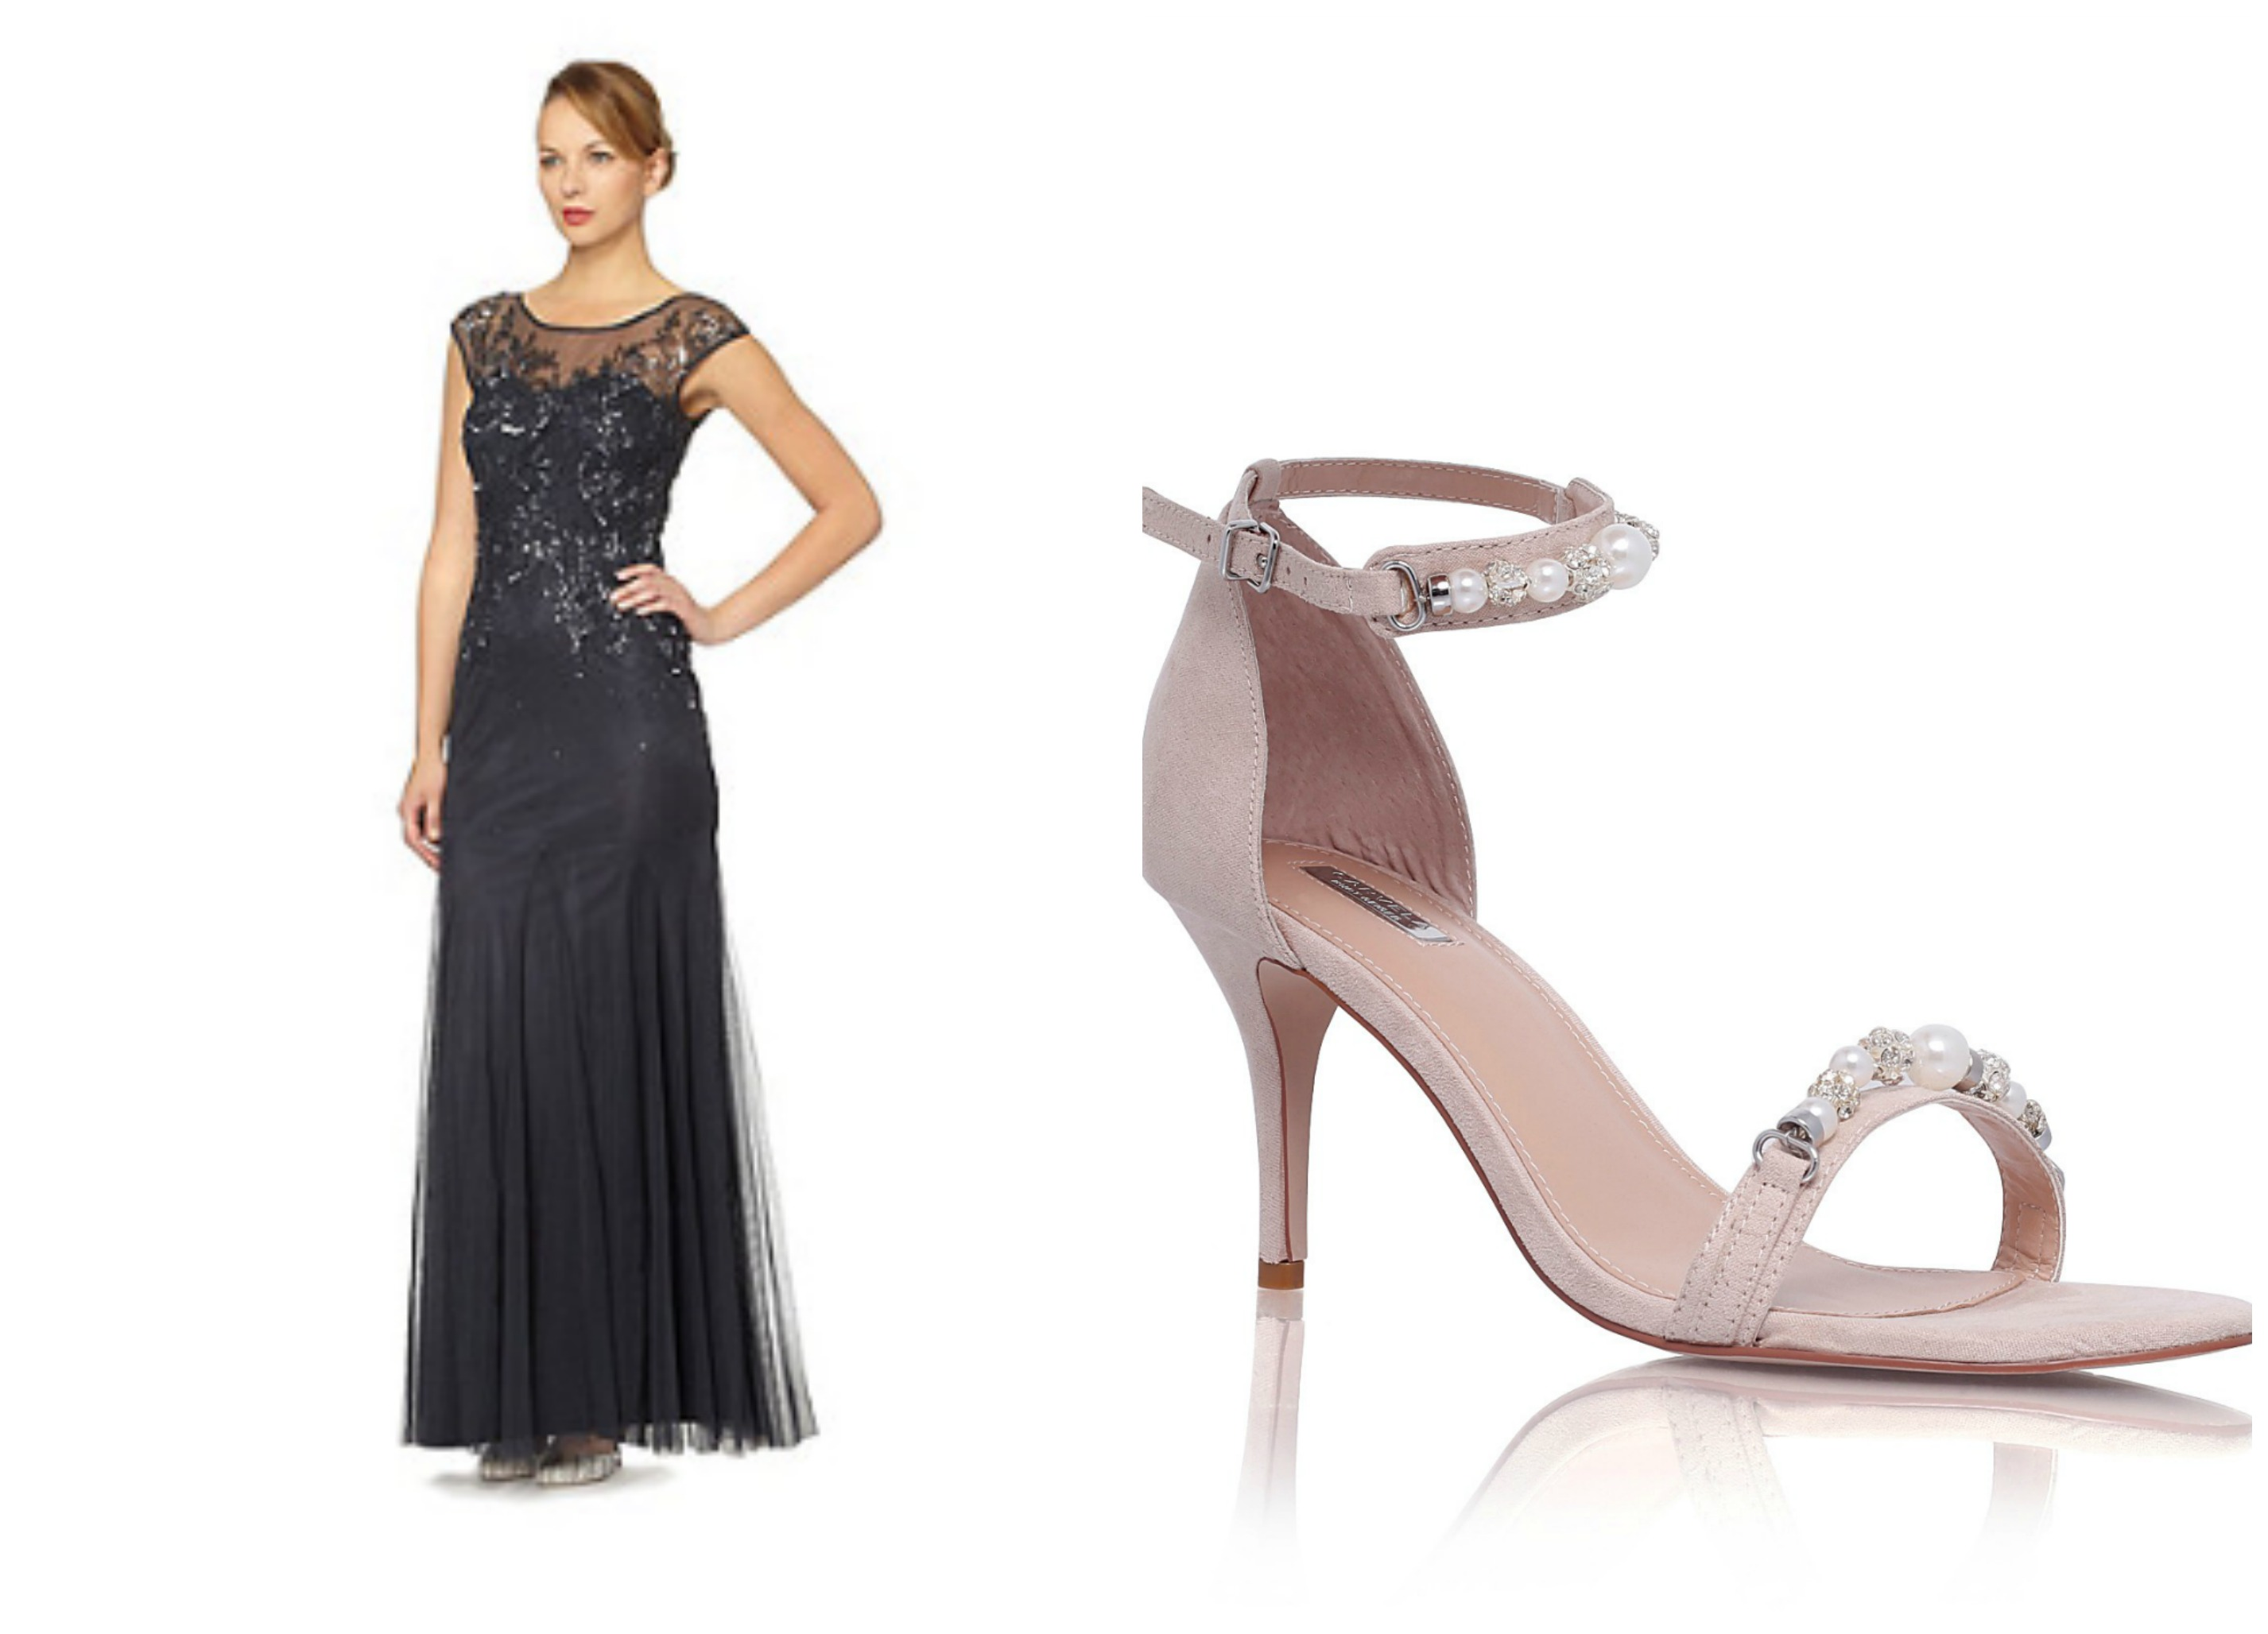 Jenny Packham ball gown with Carvela shoes suitable for a charity ball